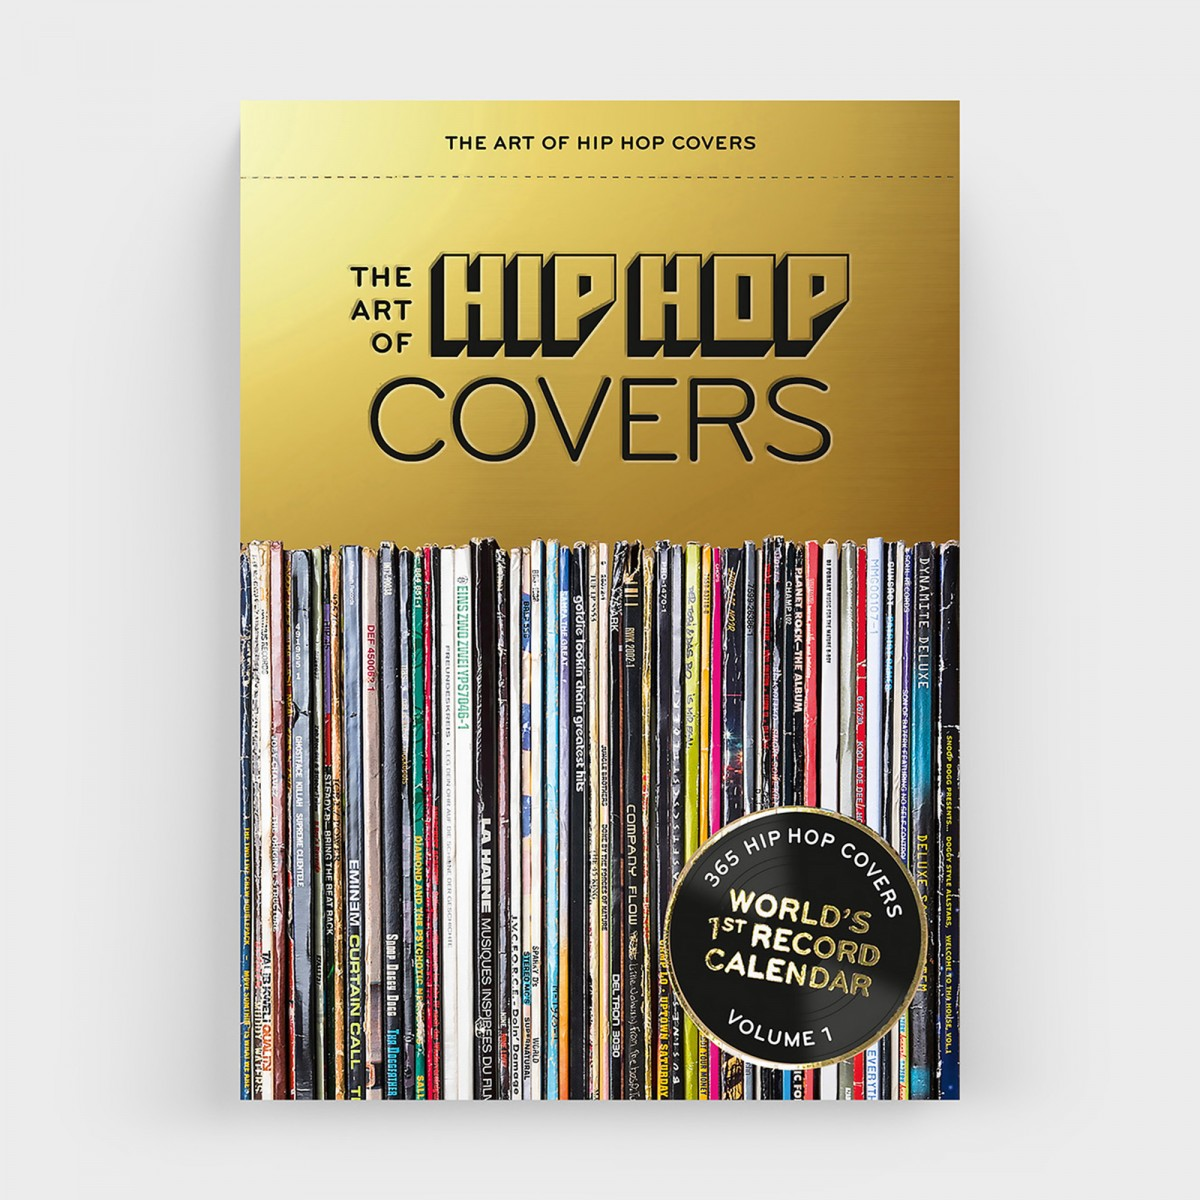 THE ART OF HIP HOP COVERS